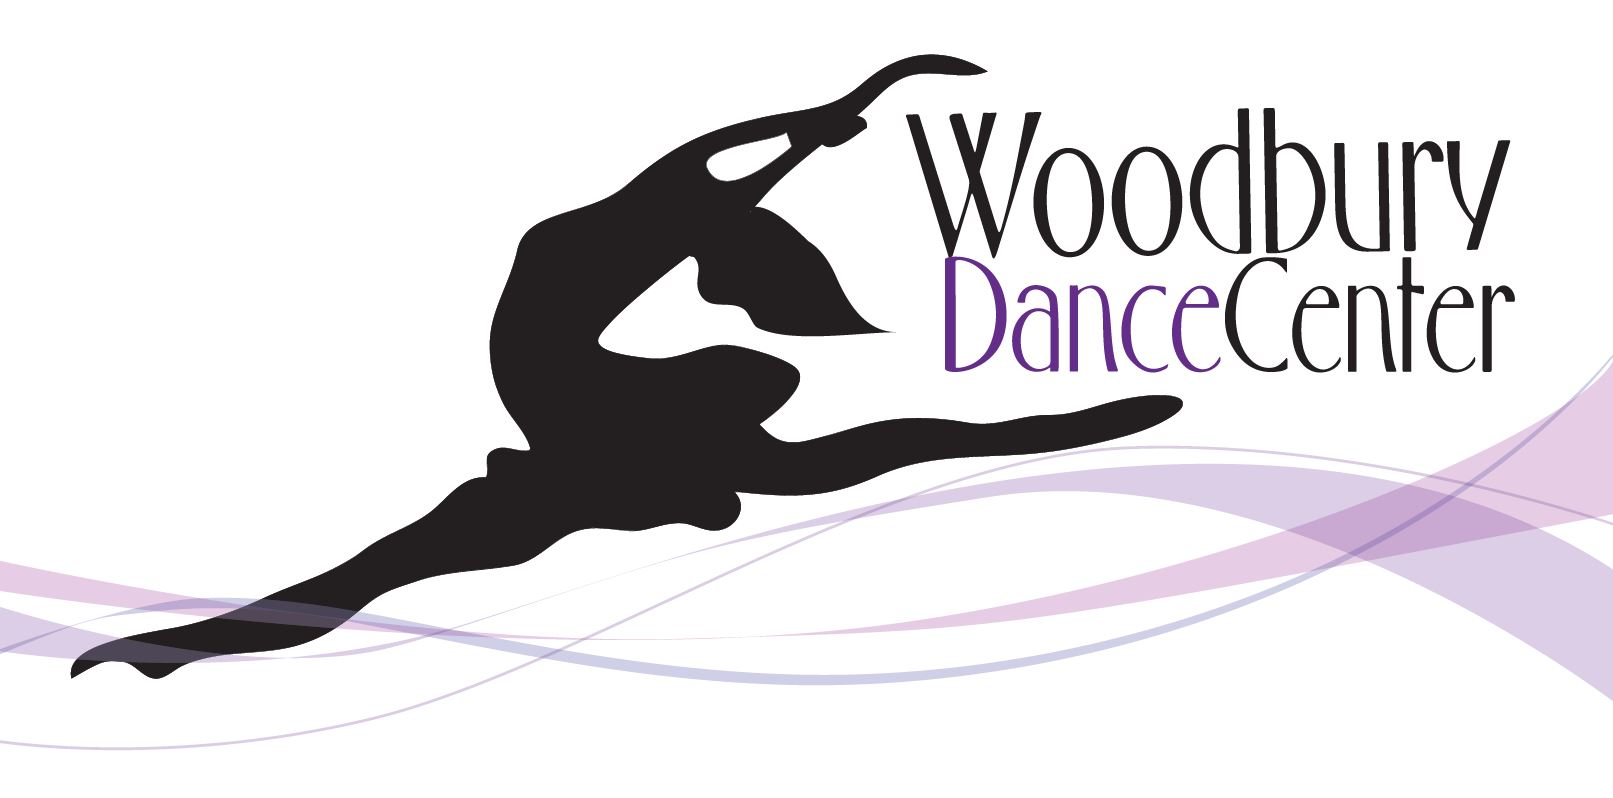 Woodbury Dance Center